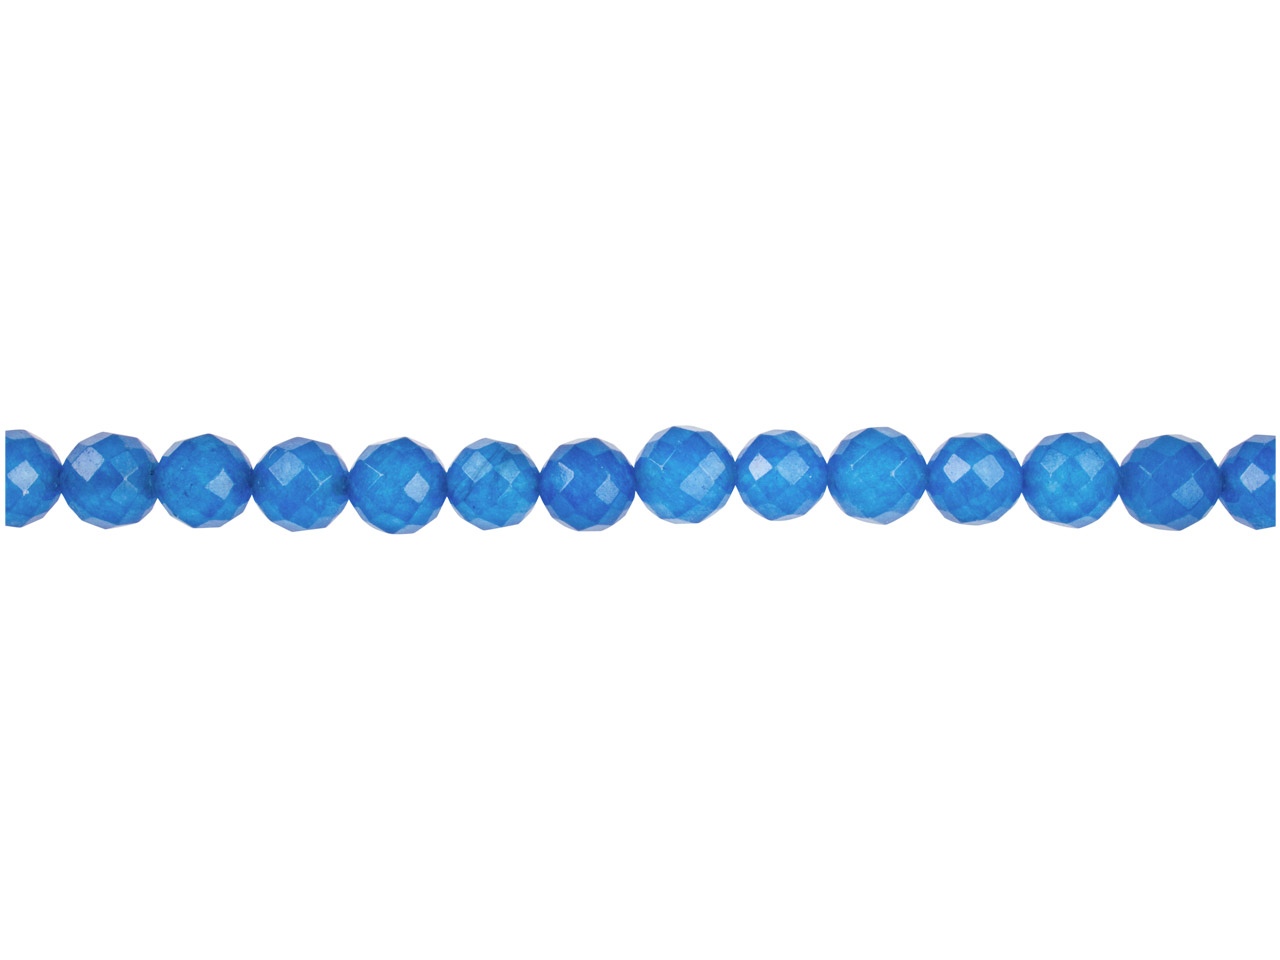 Dyed Blue Jade Faceted Semi        Precious Round Beads 6mm, 16